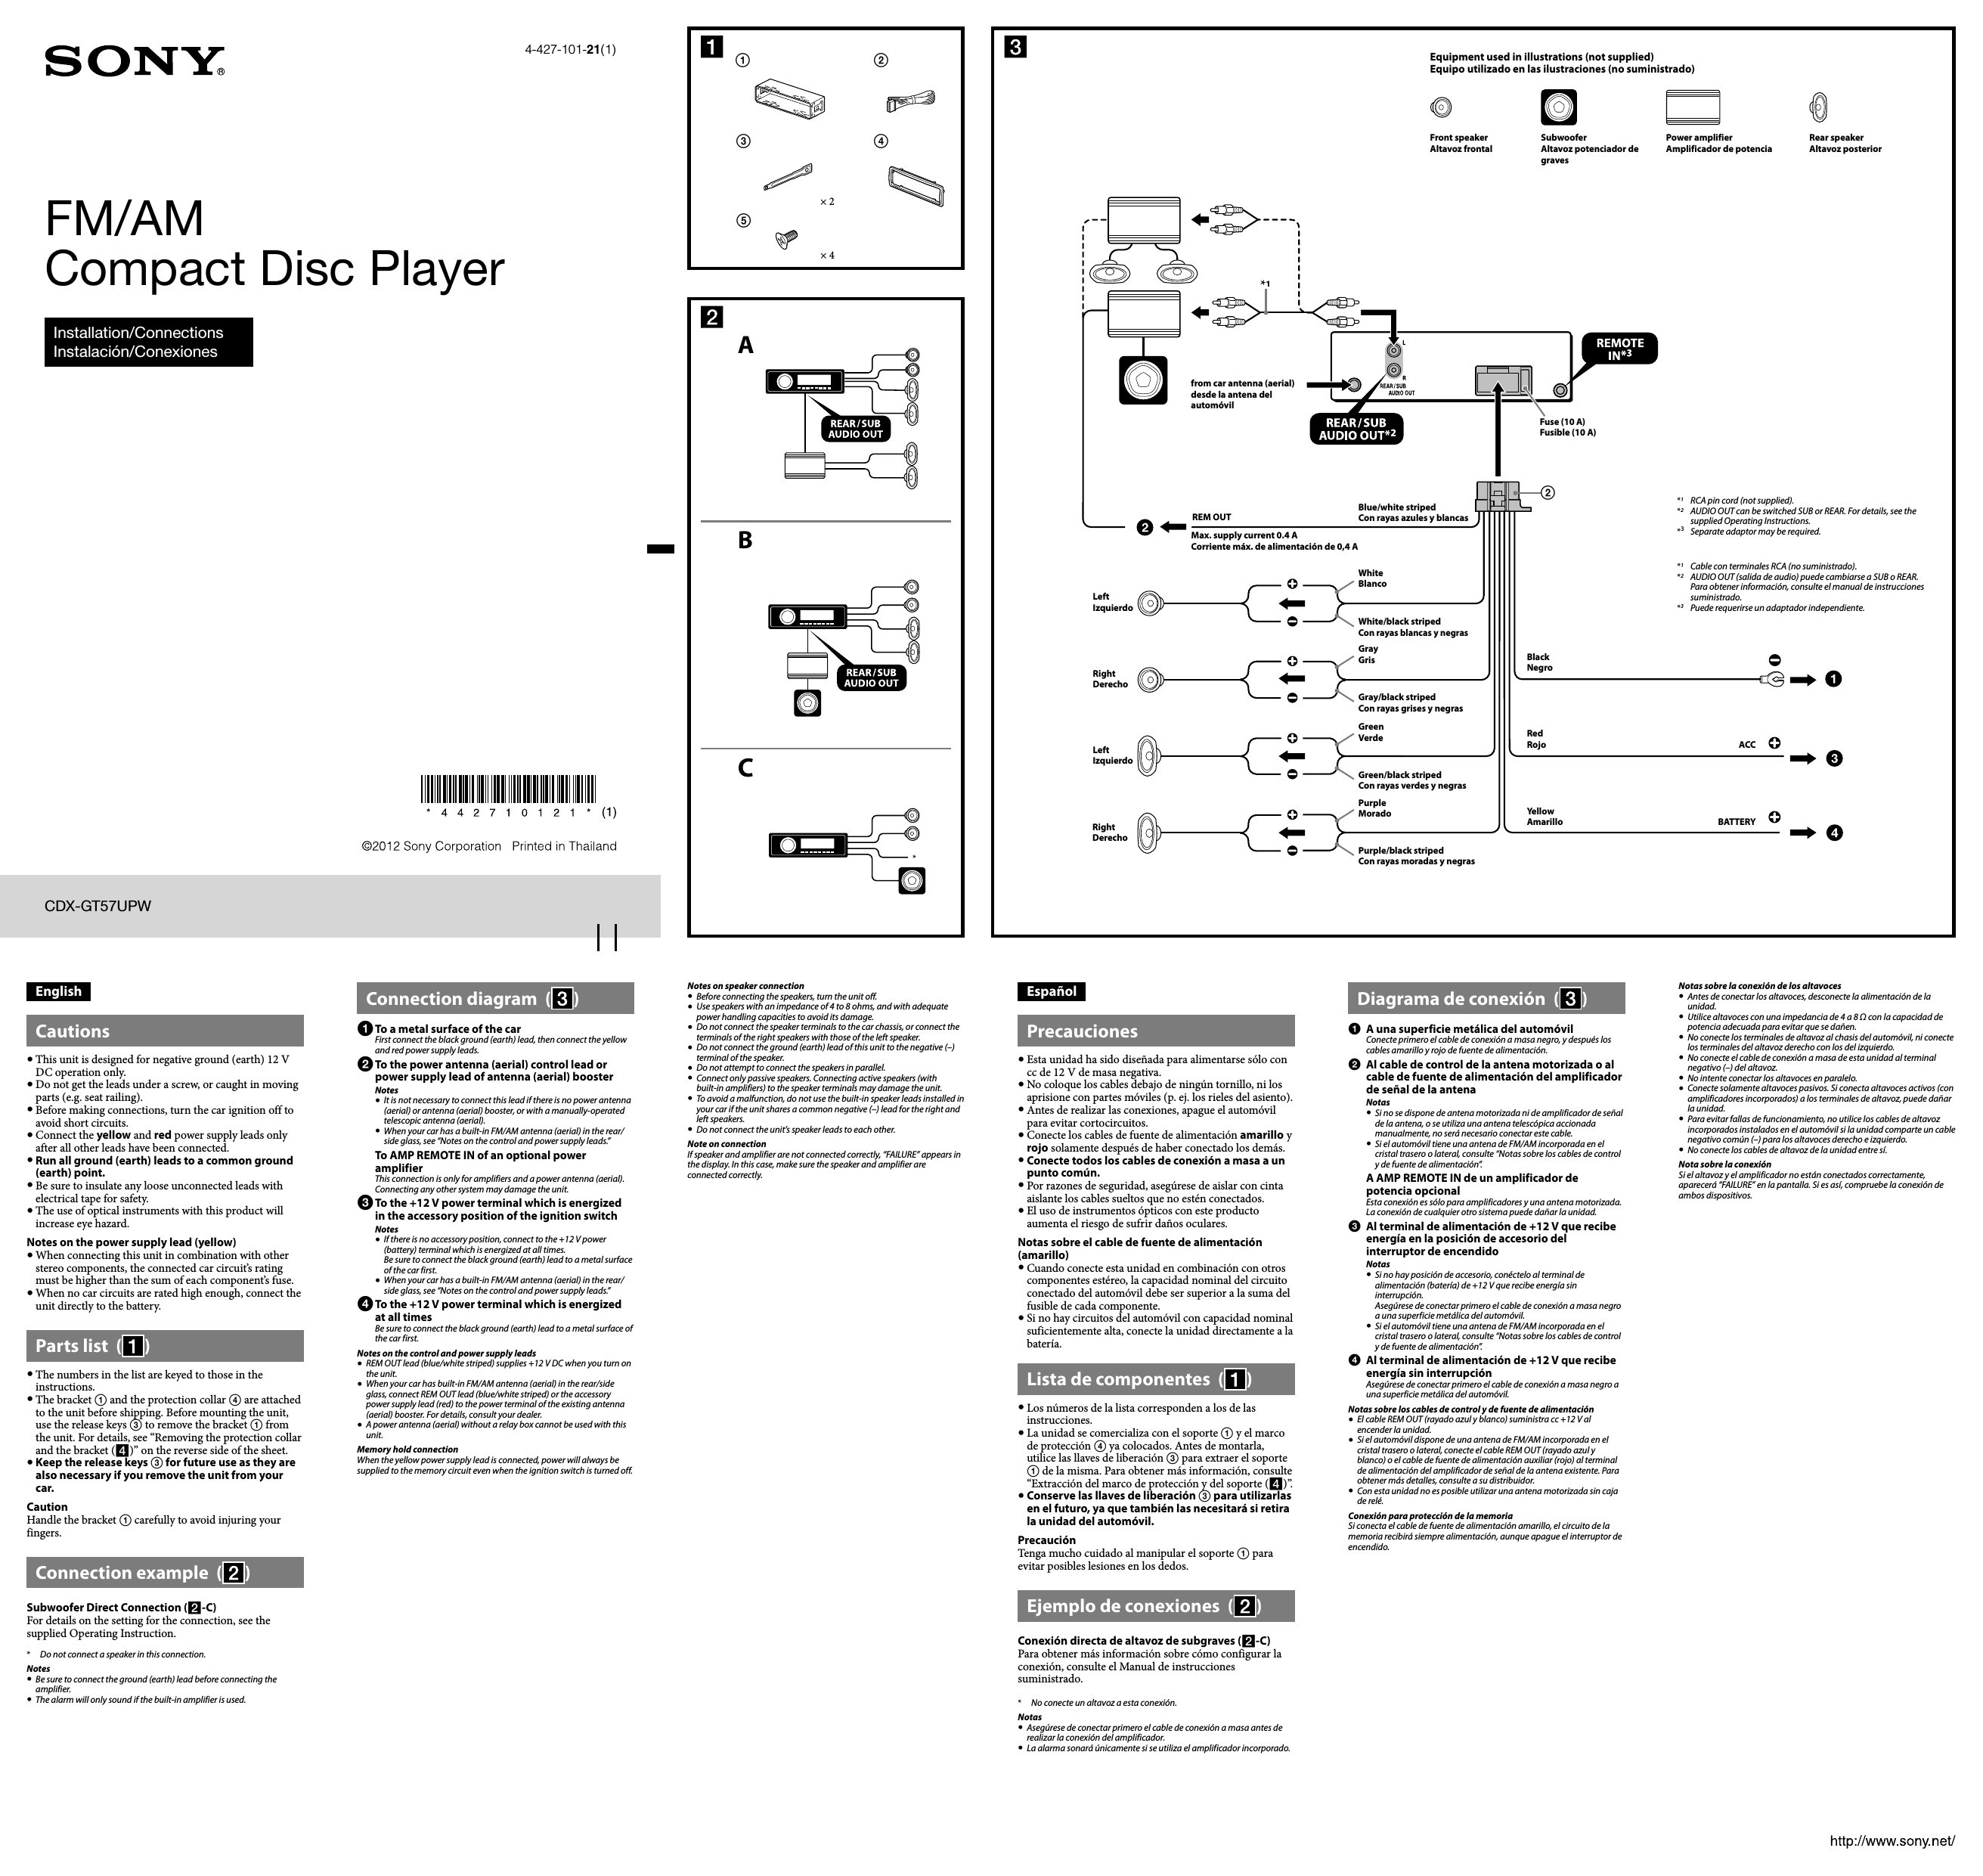 Wiring Diagram for sony Car Stereo December 2017 Archives Page 6 Jvc Car Stereo Wiring Diagram Color Of Wiring Diagram for sony Car Stereo